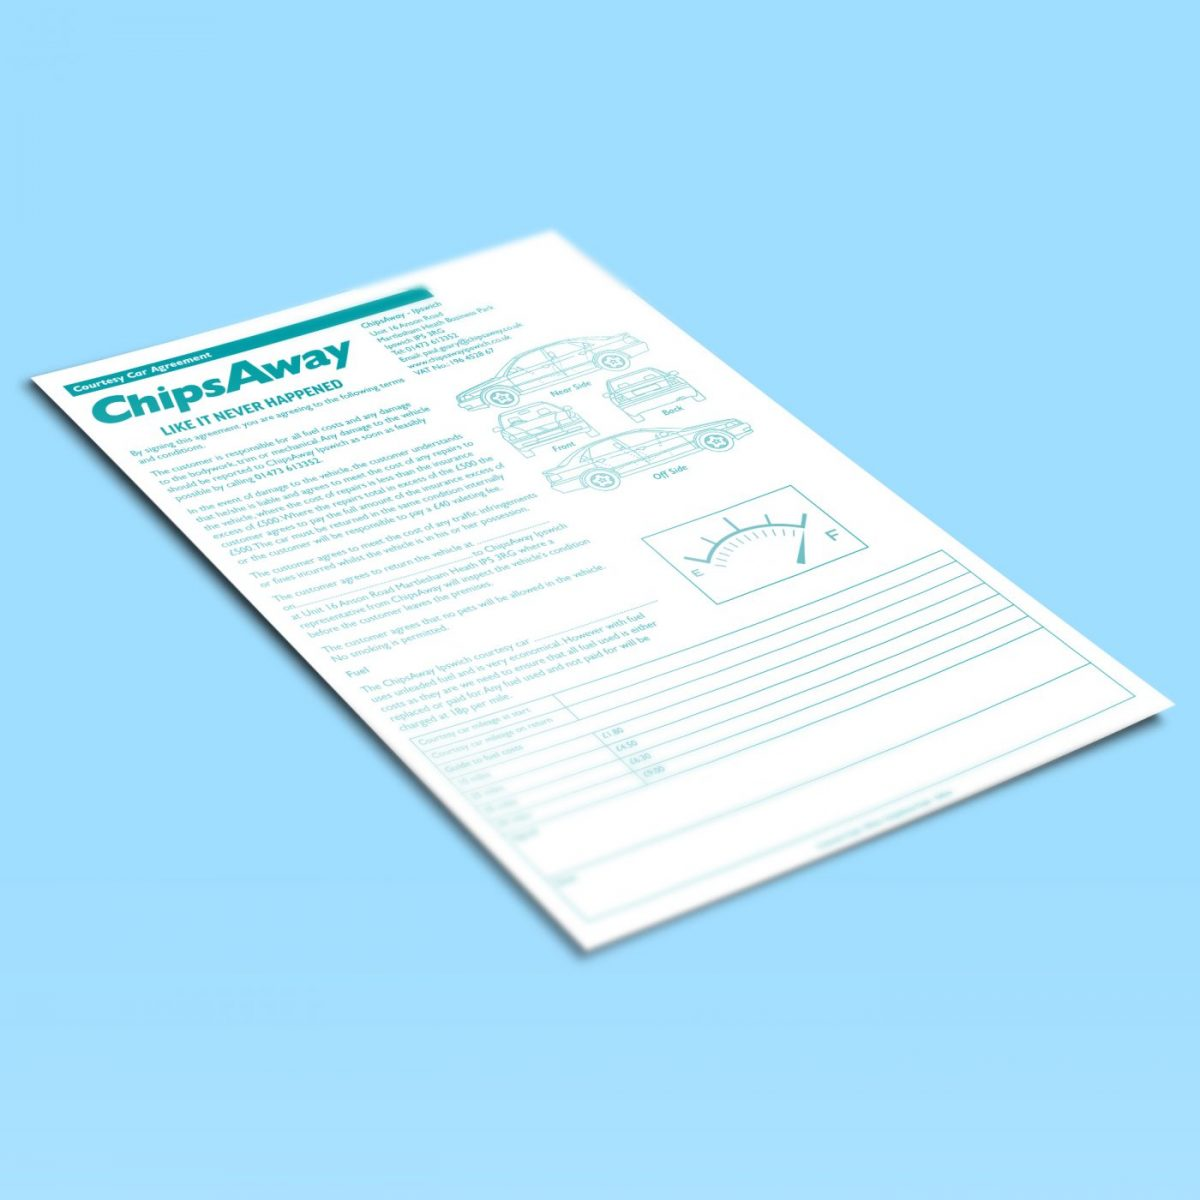 Estimate pads print for ChipsAway Ipswich